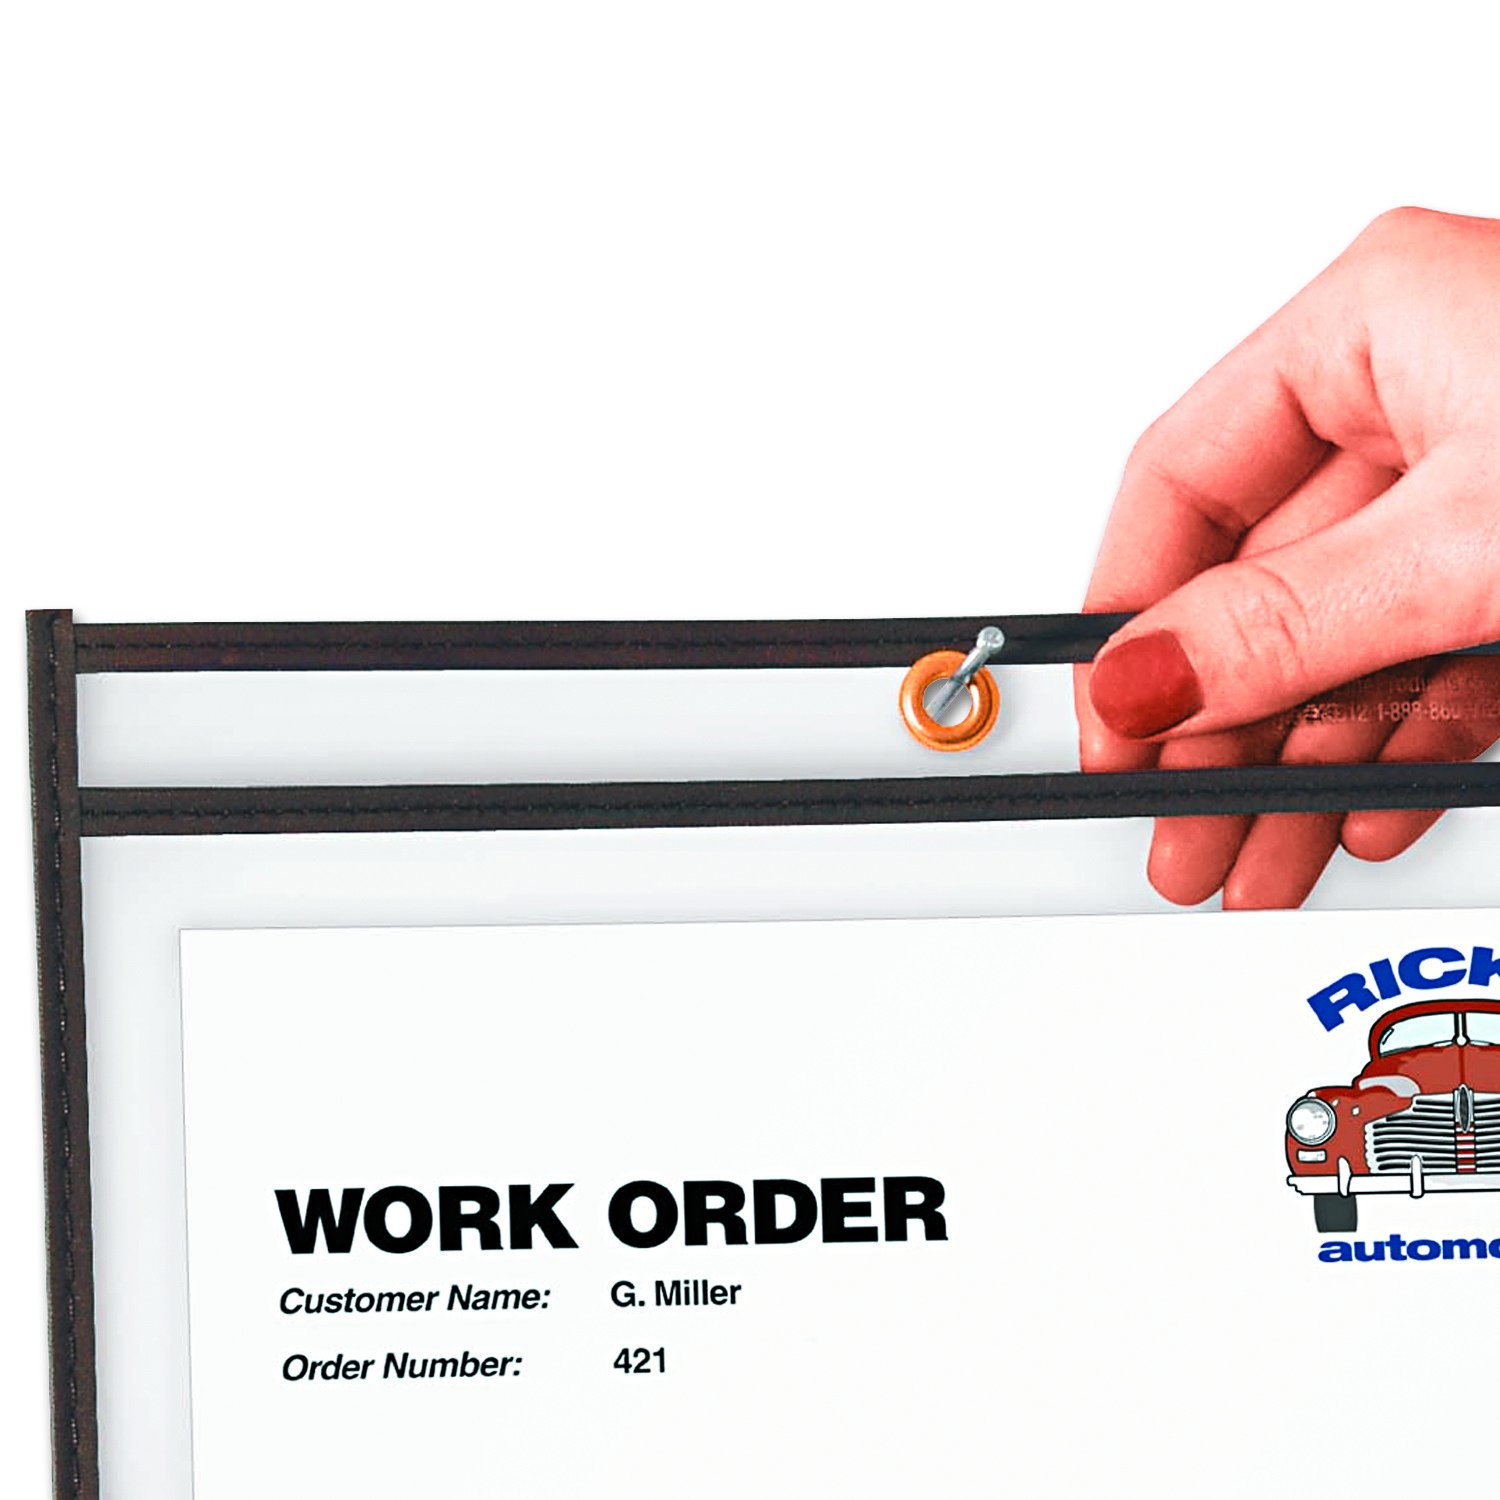 46158 Stitched 15 x 18 Inches 25-Count Box C-Line Shop Ticket Holders Both Sides Clear Black Trim